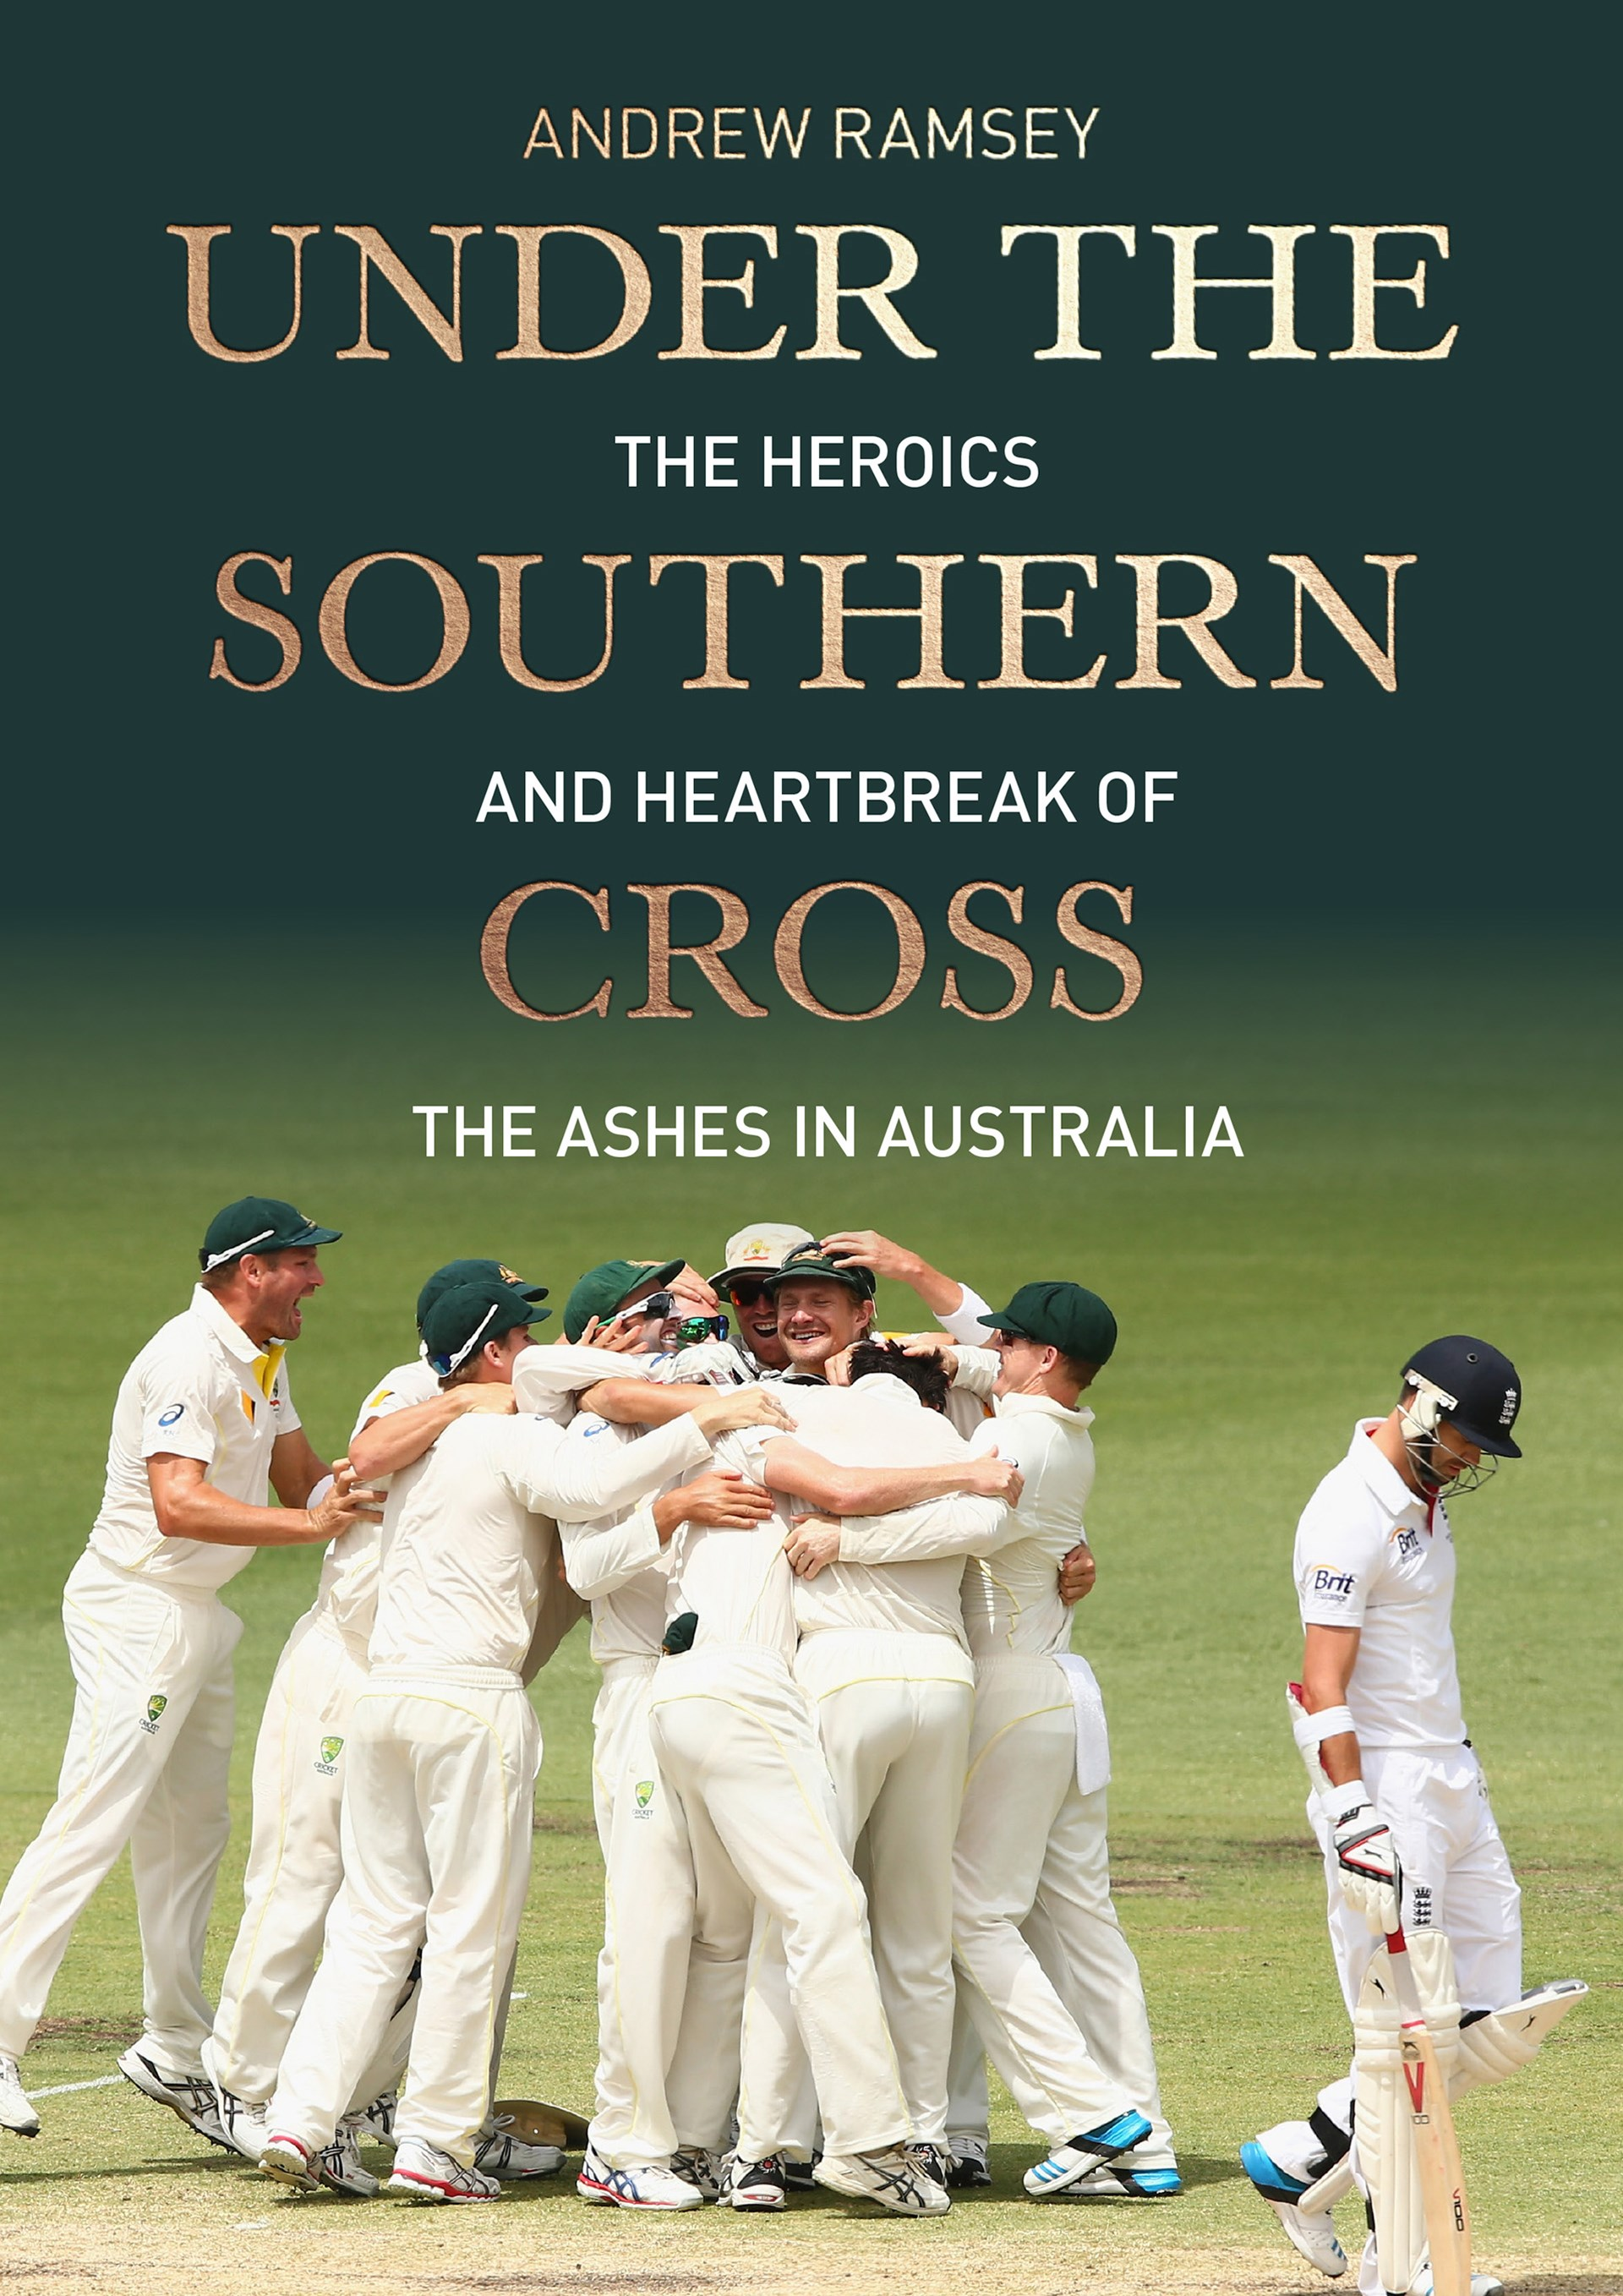 Under the Southern Cross: The Heroics and Heartbreak of the Ashes in Australia